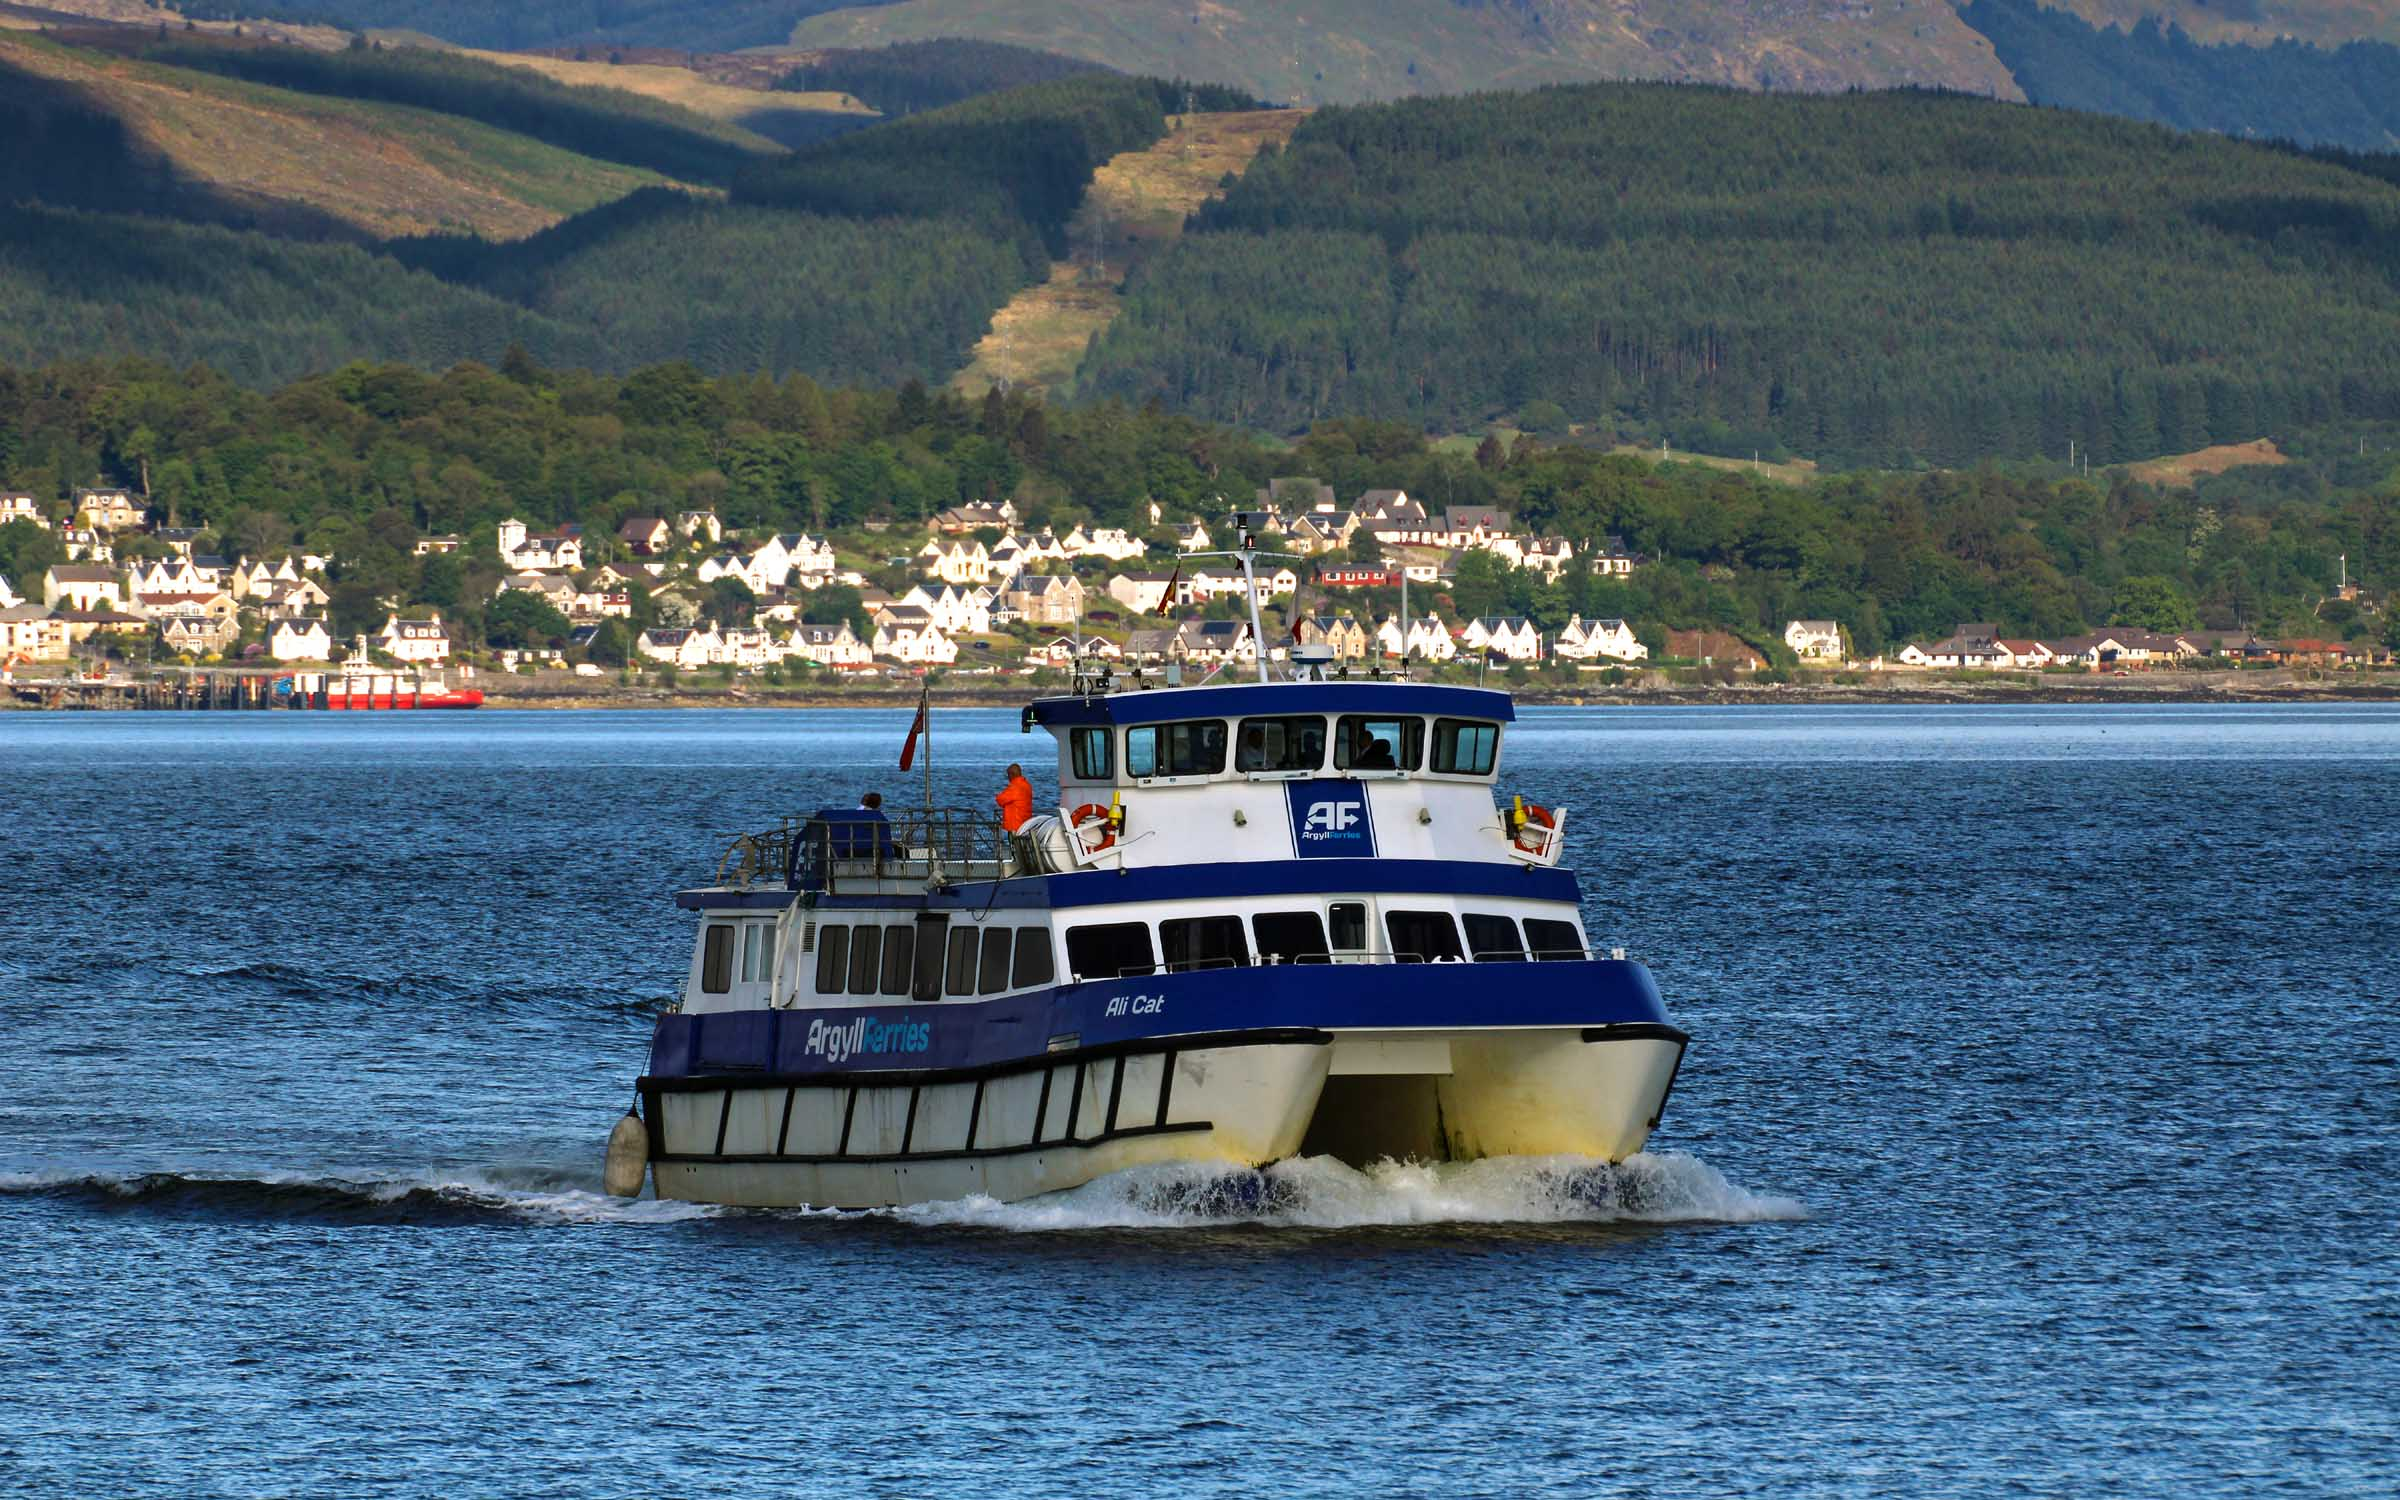 Ali Cat in Argyle Ferries livery (Ships of CalMac)